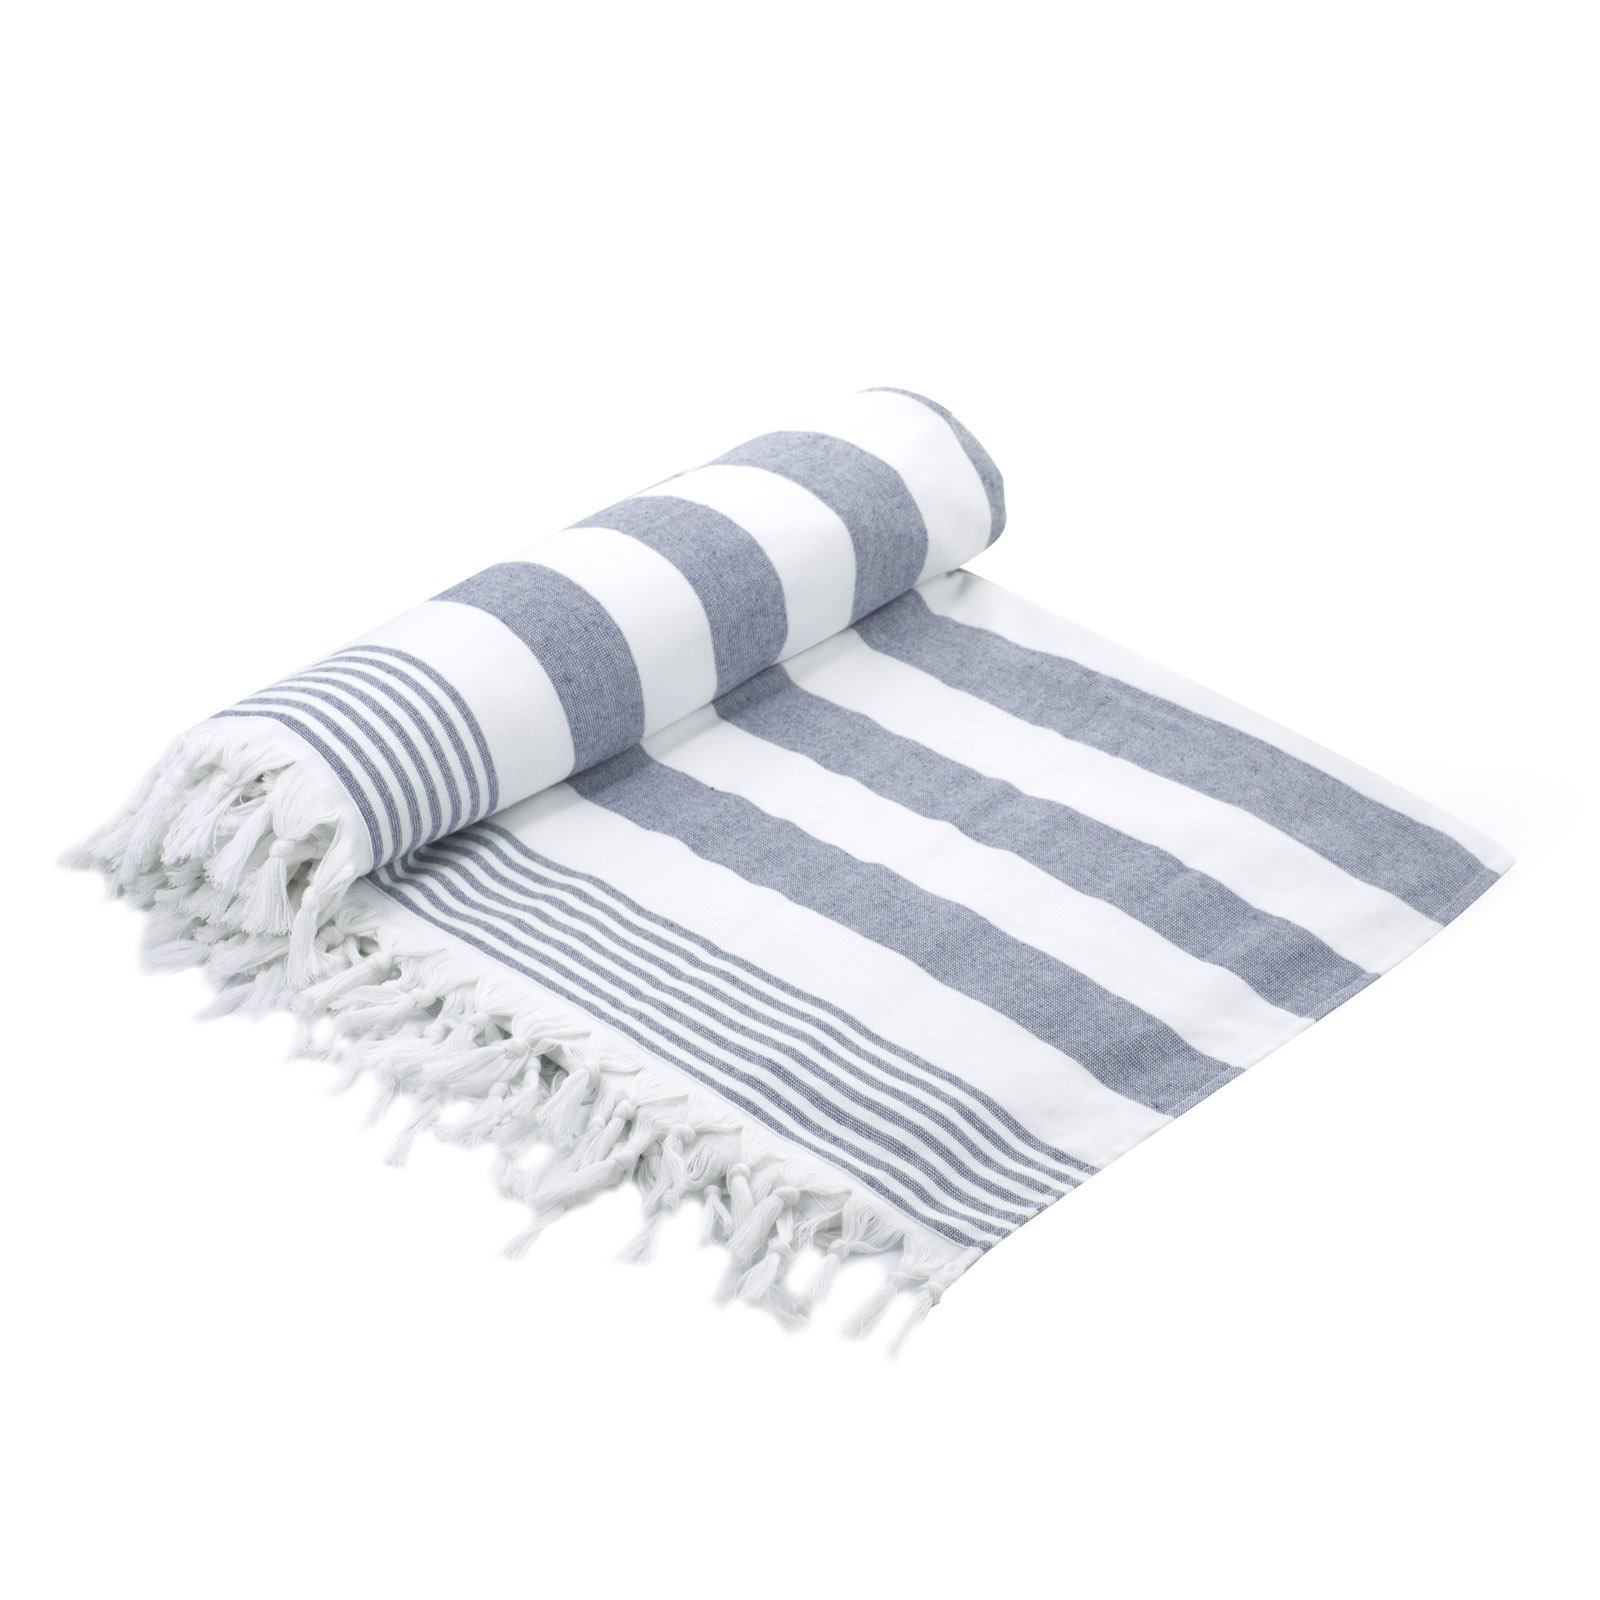 Cottonna 100% Luxury Turkish Cotton Oversized Beach Blanket, 80'' by 80'', Peshtemal Front with Terry Loop Back, Fouta Blanket, Throw, Peshterry Beach Towel Queen Size (White-Blue)